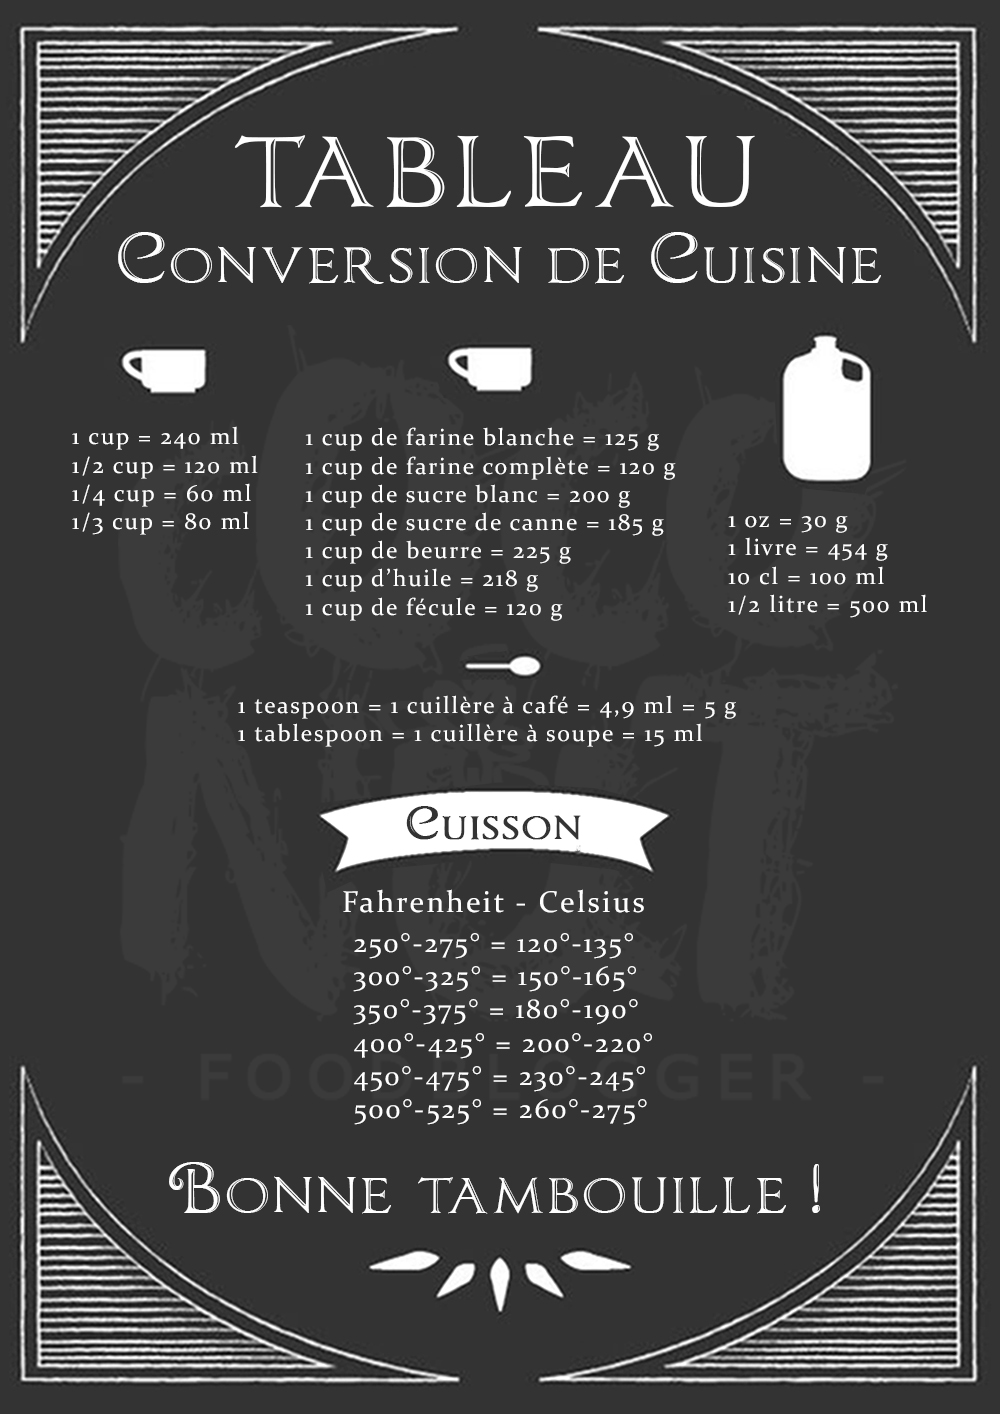 Affiche conversion cuisine quivalence us blog coconut for Equivalence mesure cuisine